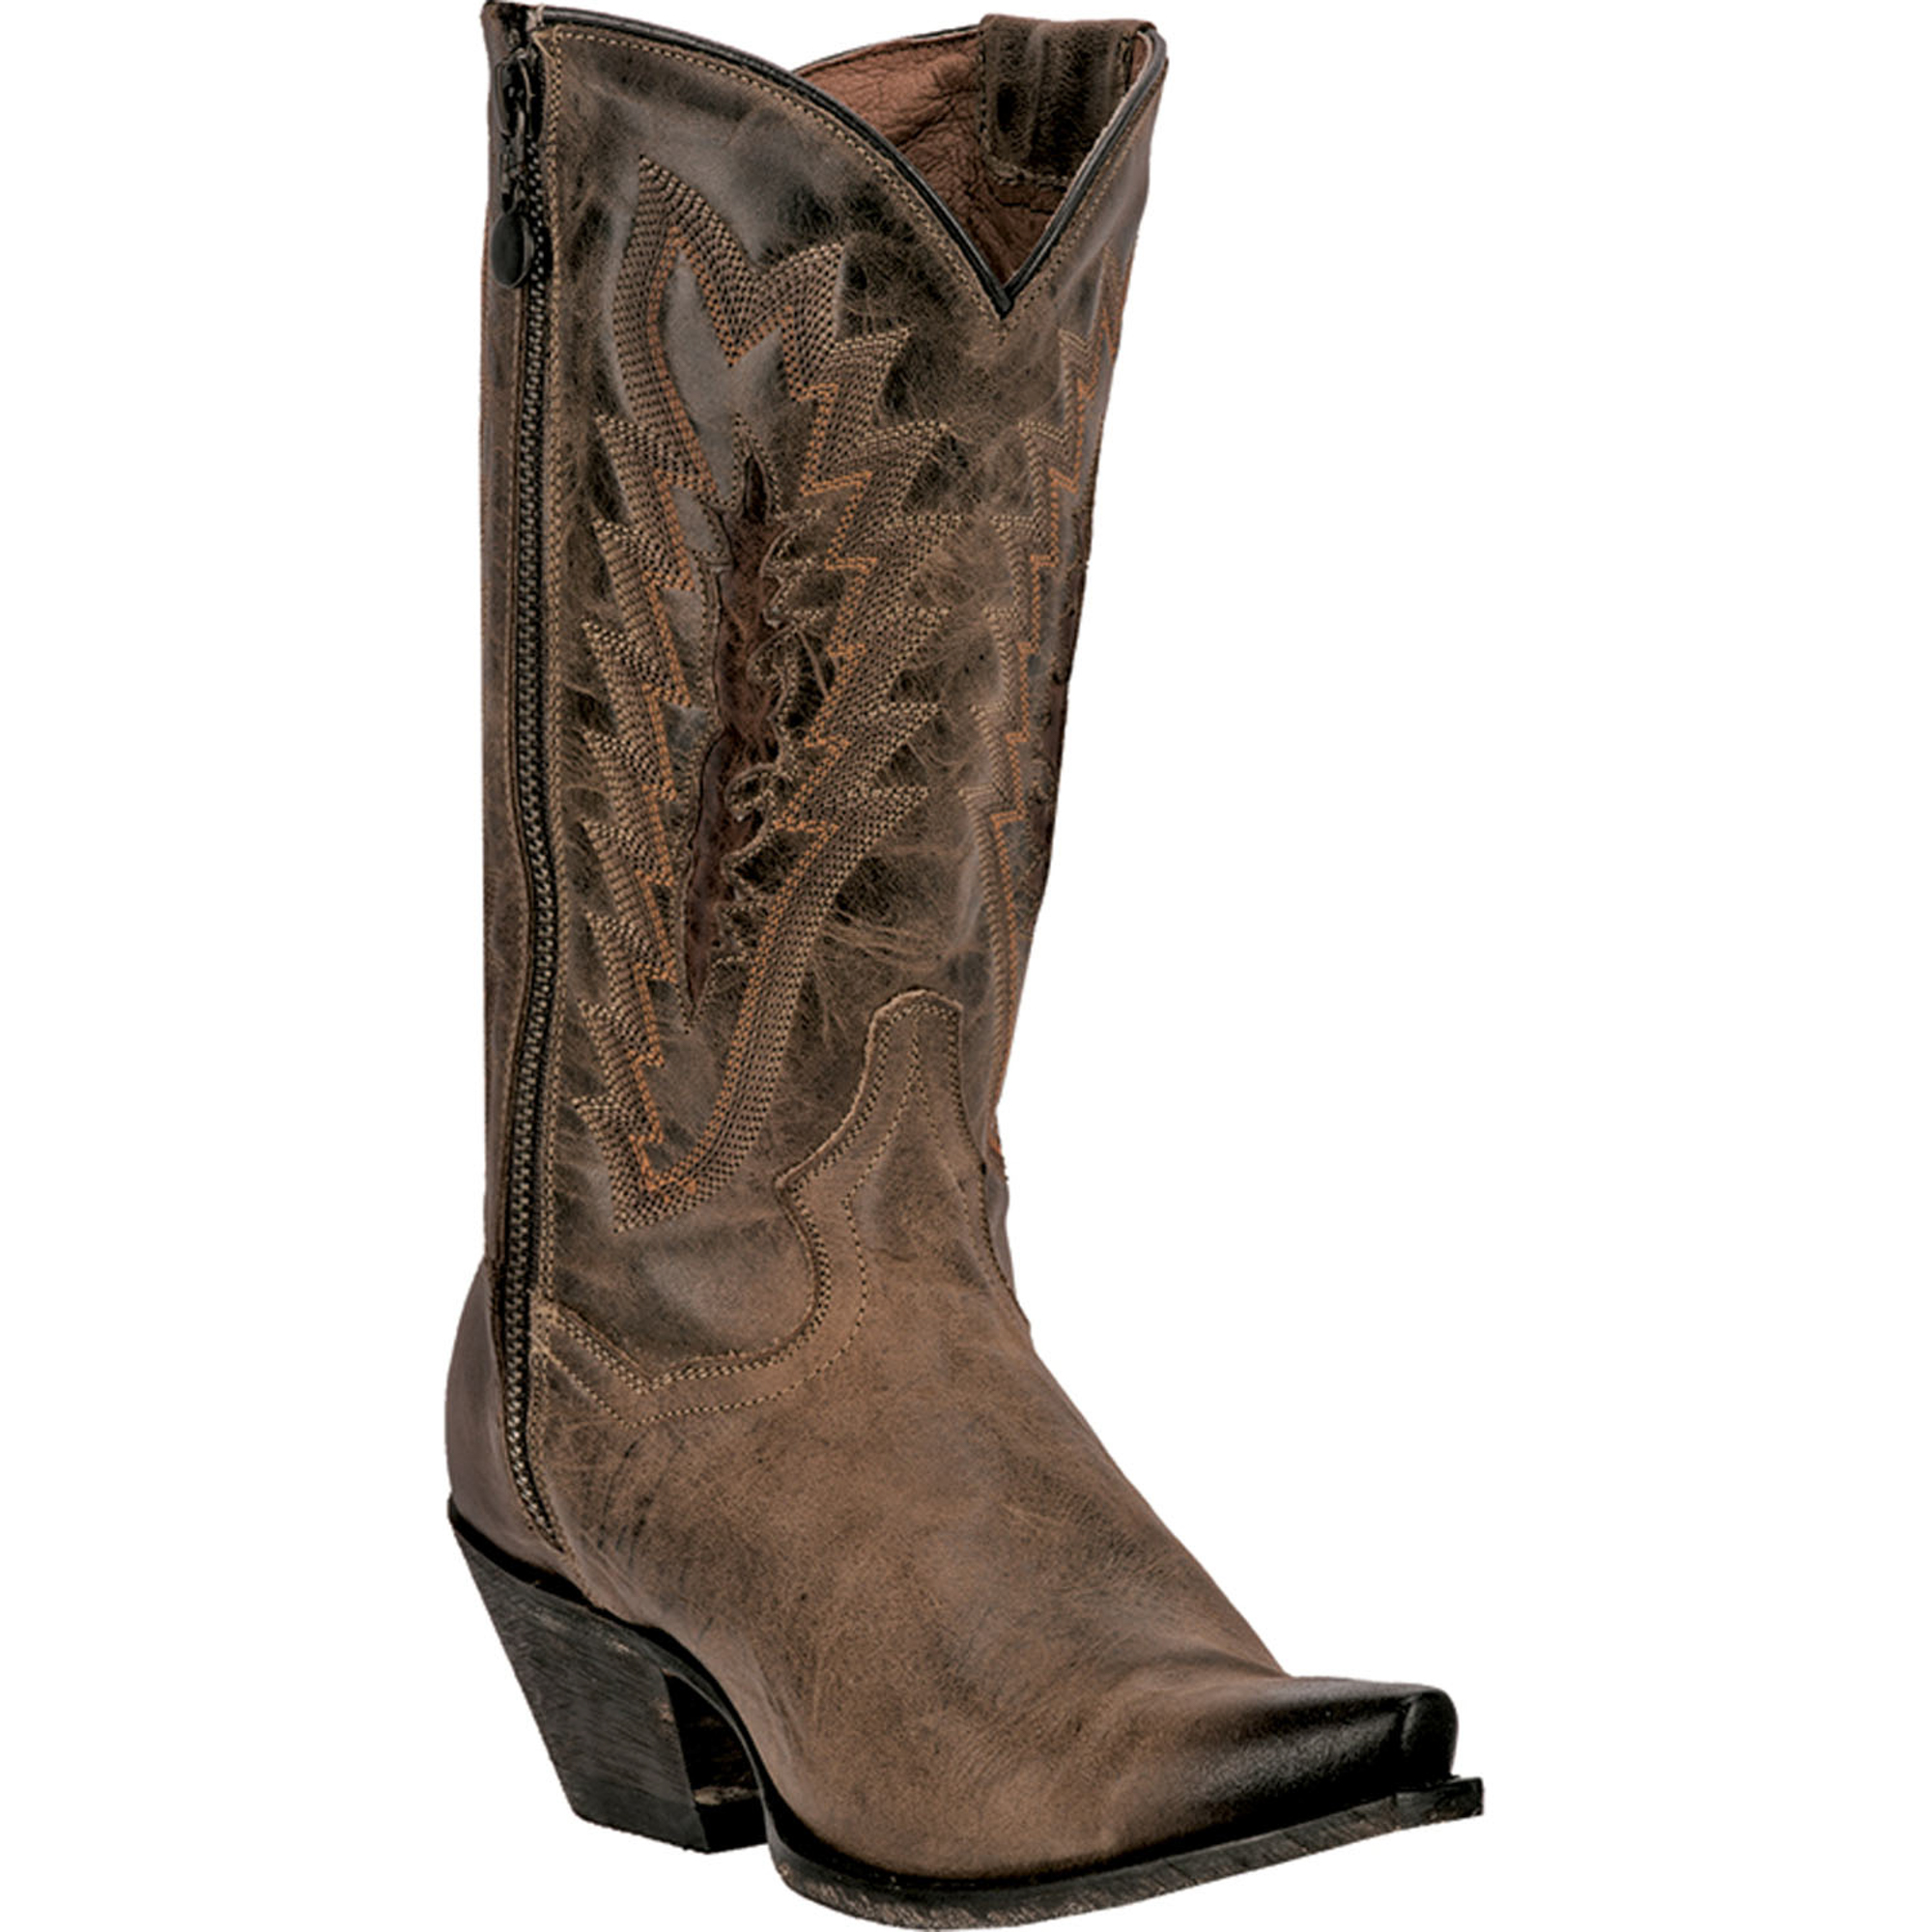 Creative  About Dan Post Womens Chocolate Leather Vintage Blue Bird Cowboy Boots